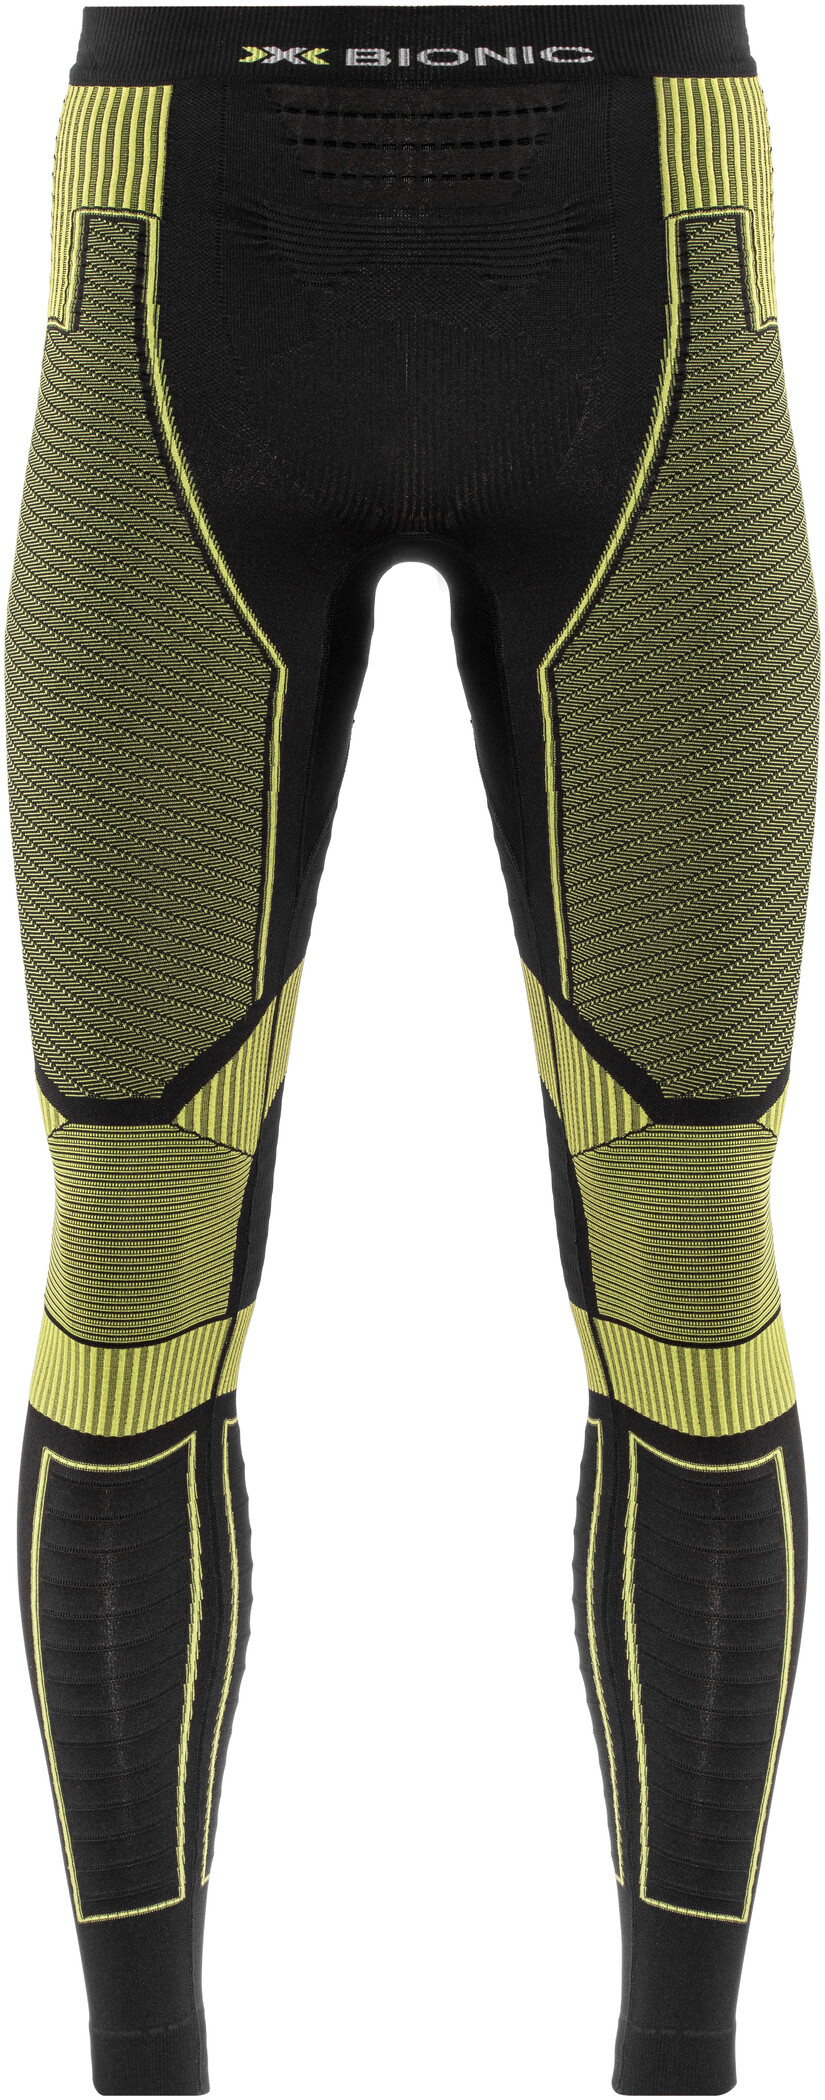 X-Bionic Effektor Power OW Løbebukser Herrer, black/yellow | Trousers